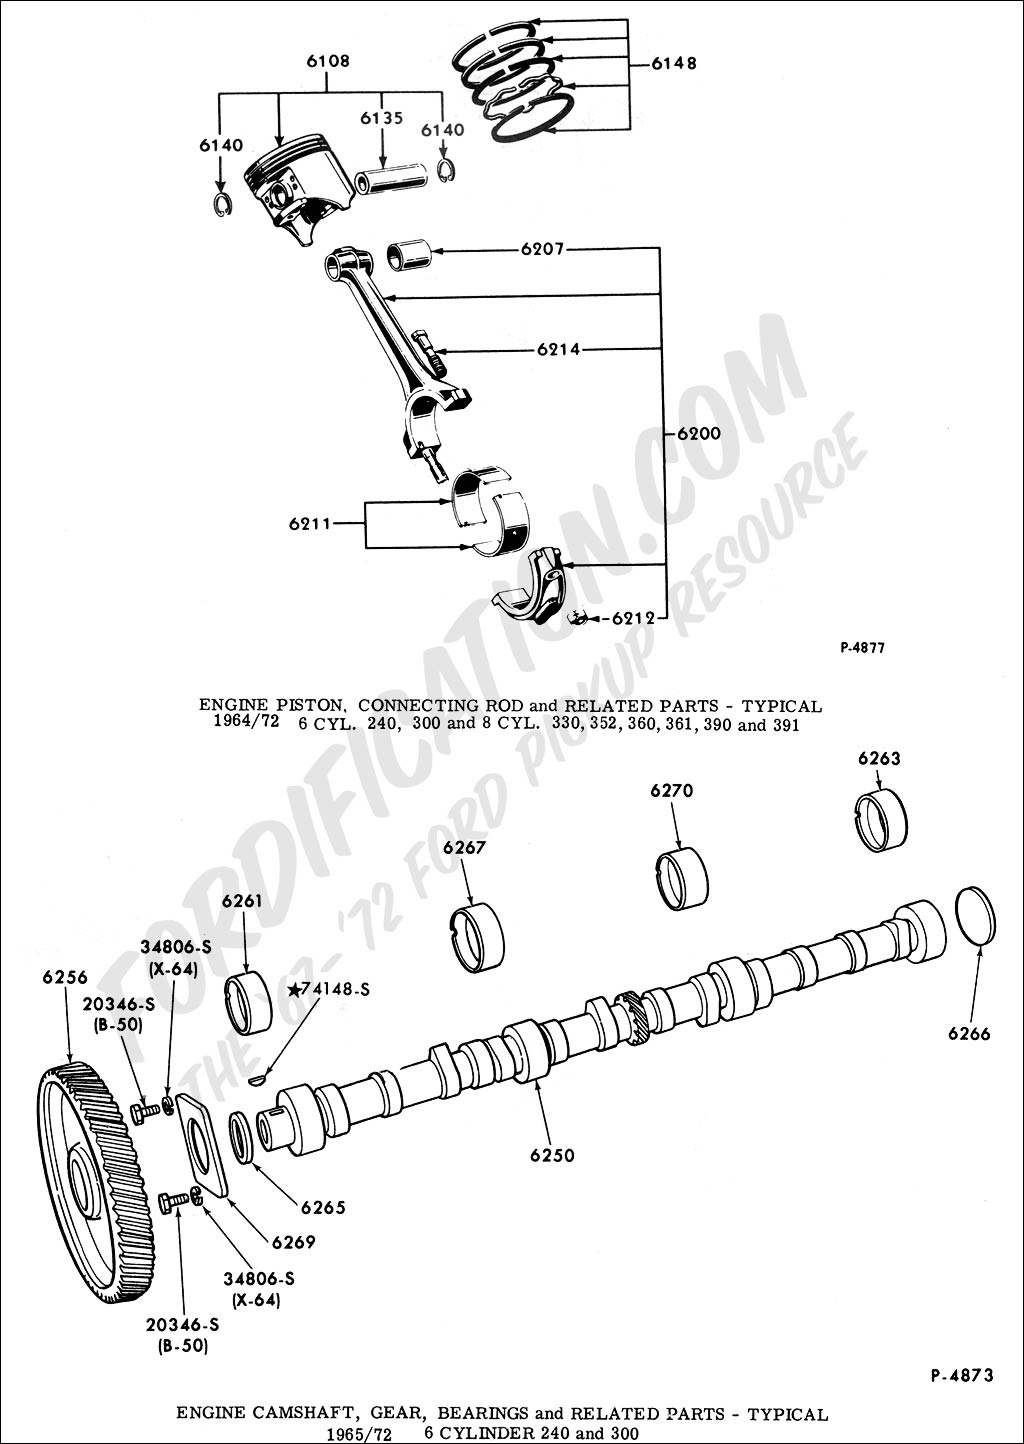 hight resolution of engine piston connecting rod and related parts typical 1964 1972 6 cyl 240 300 and 8 cyl 330 352 360 361 390 and 391